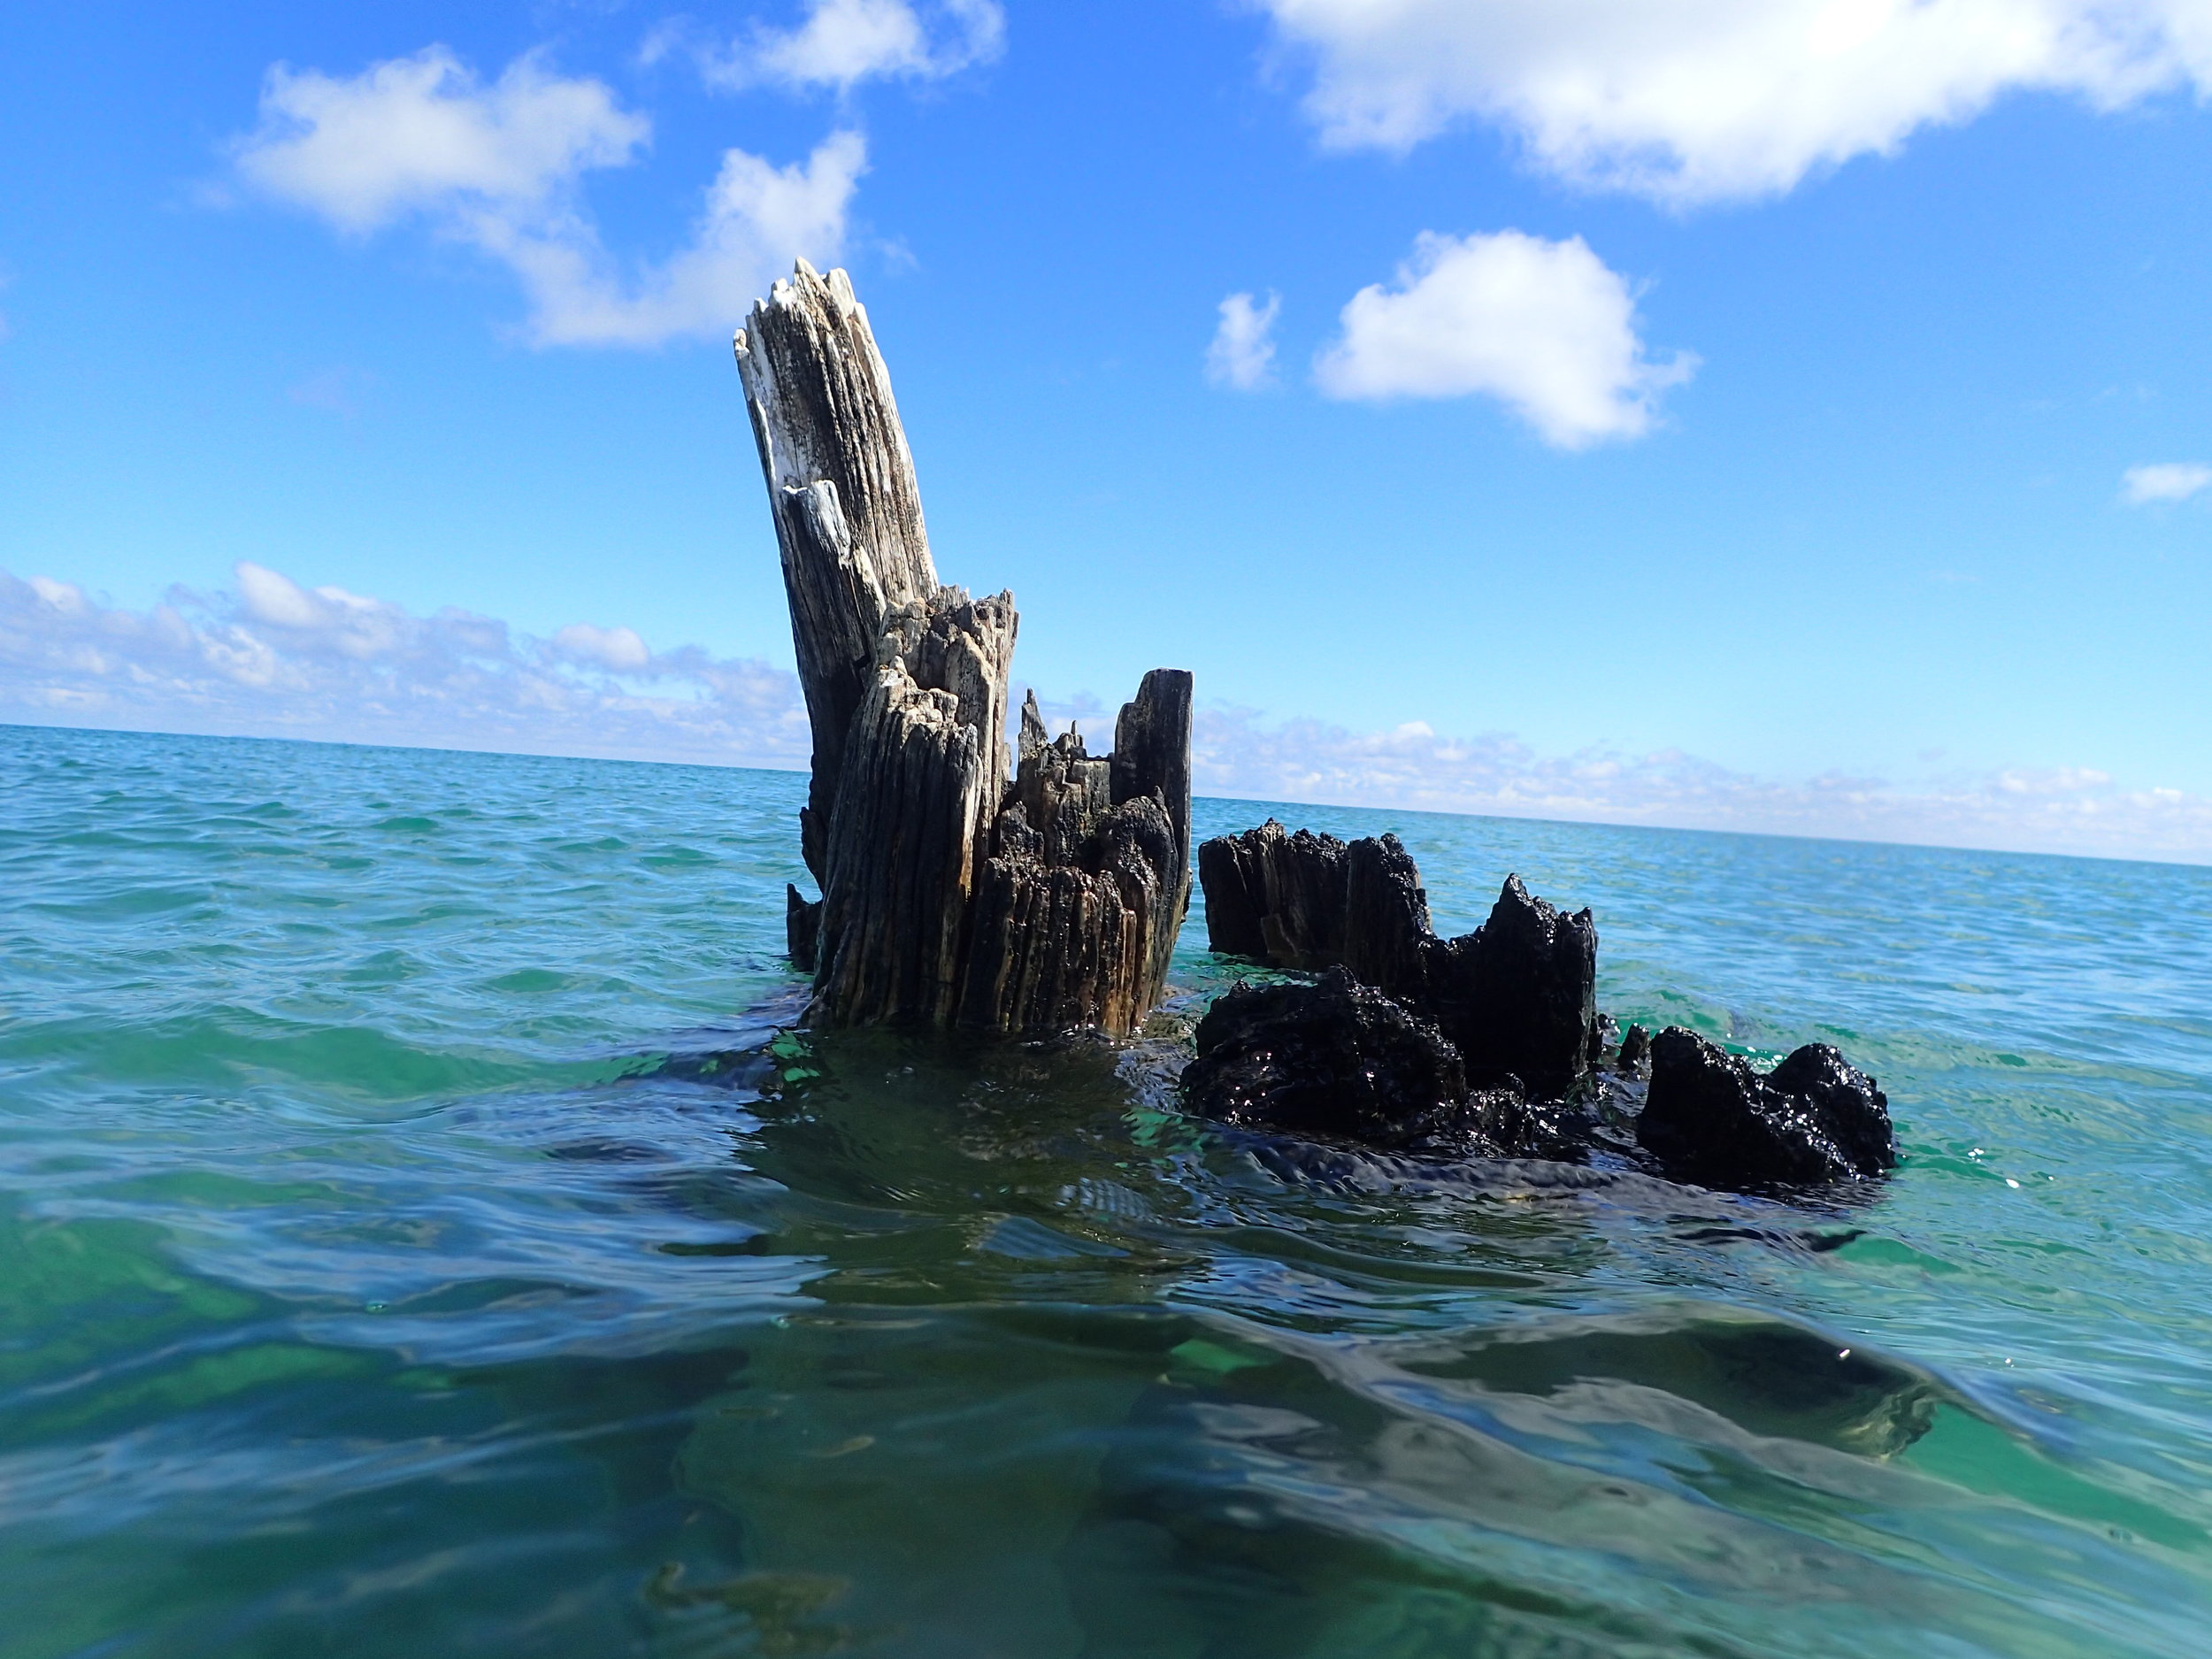 The footings of an abandoned pier still stick up above the surface.